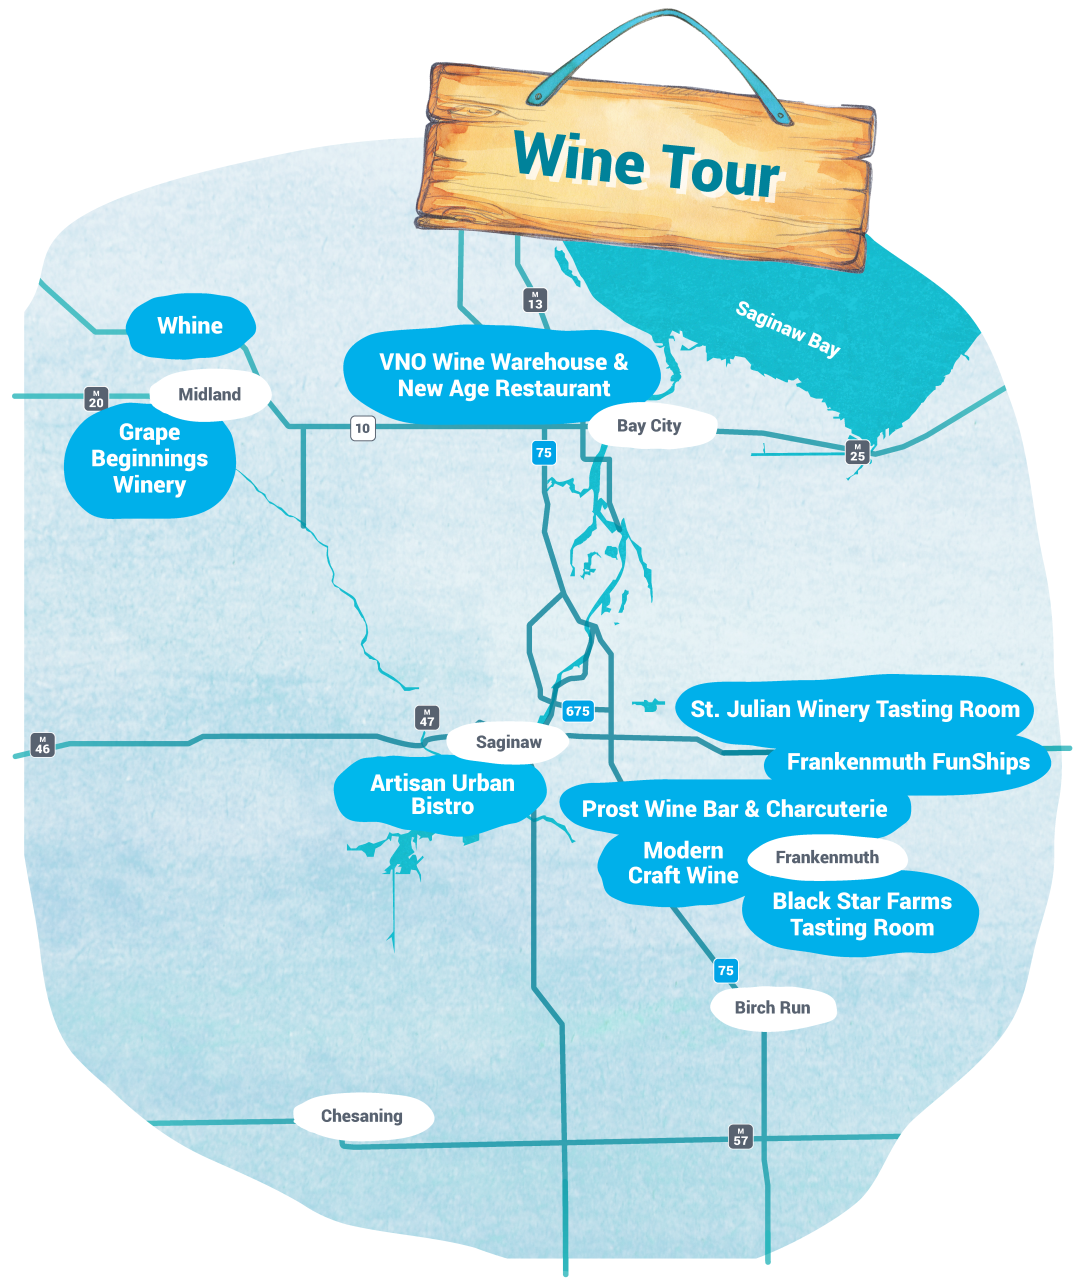 Self-Guided Tours - Wine Tour Map